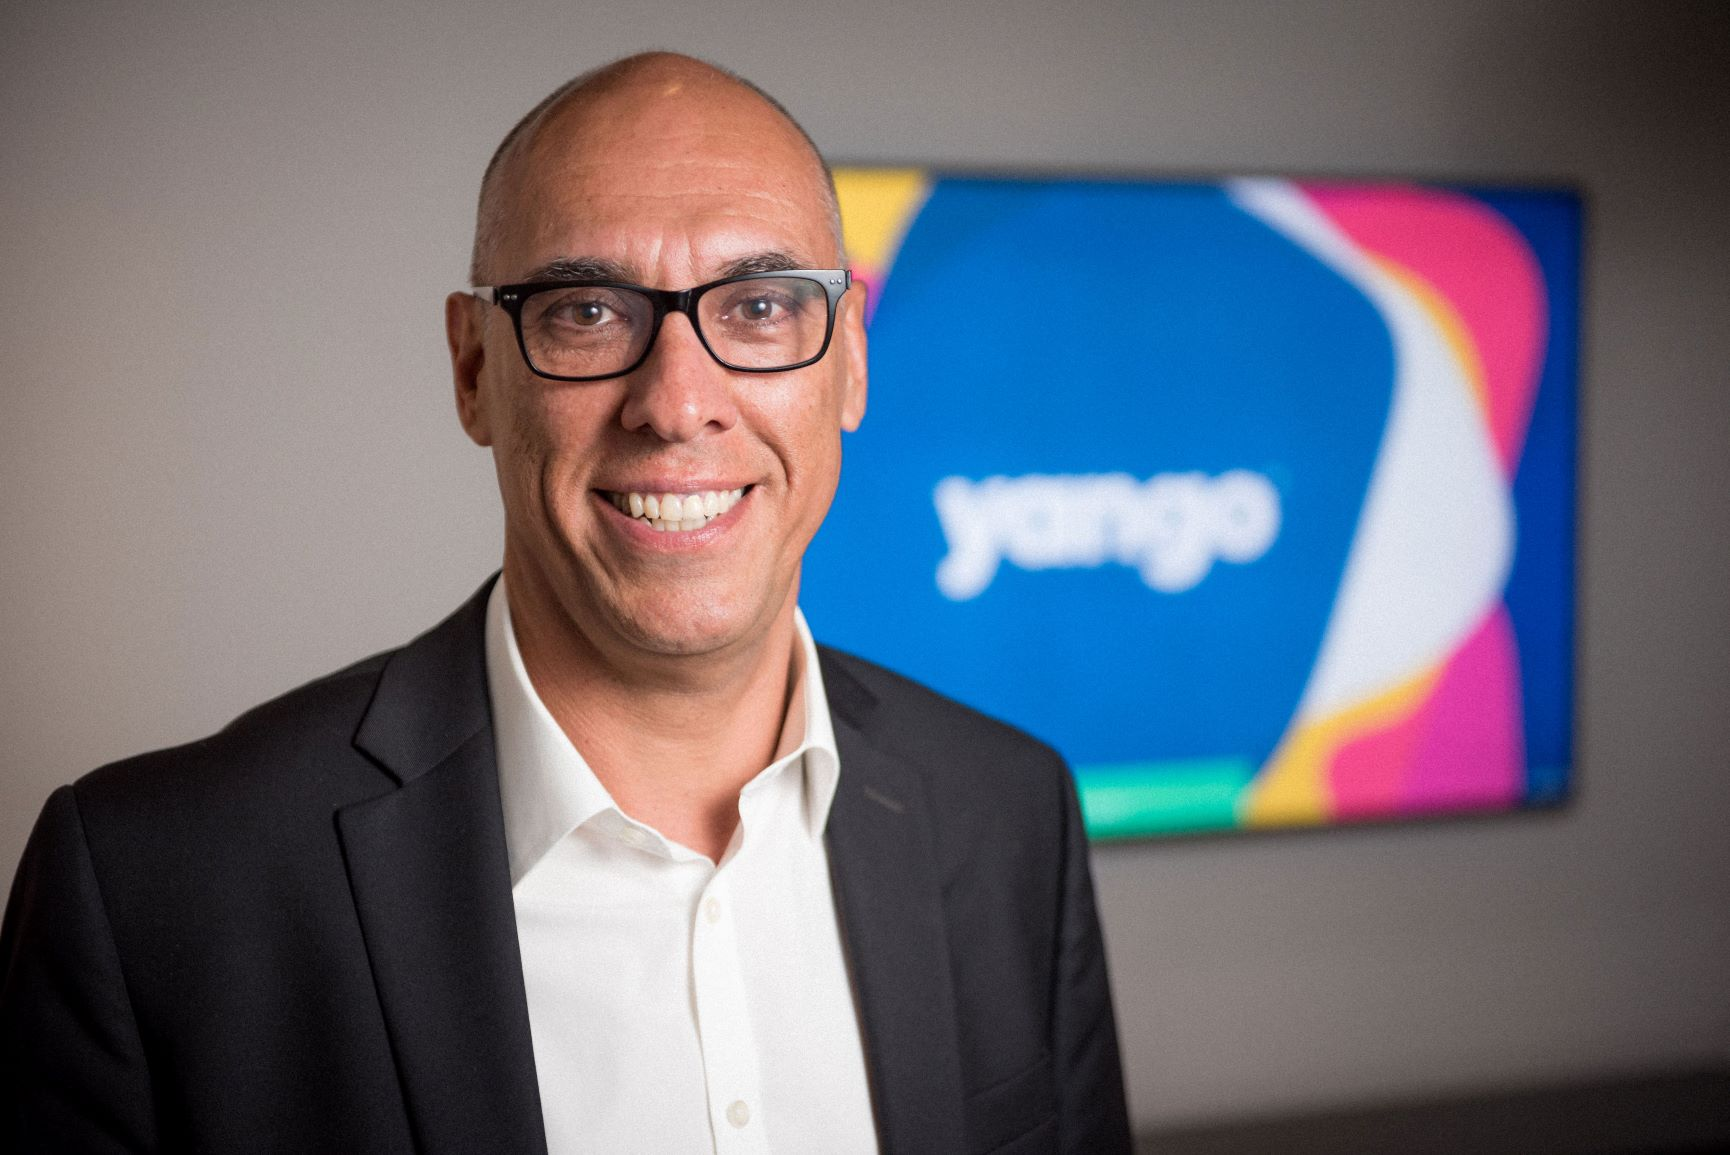 Digital transformation consultancy Yango Group appoints industry leader John Sintras as CEO